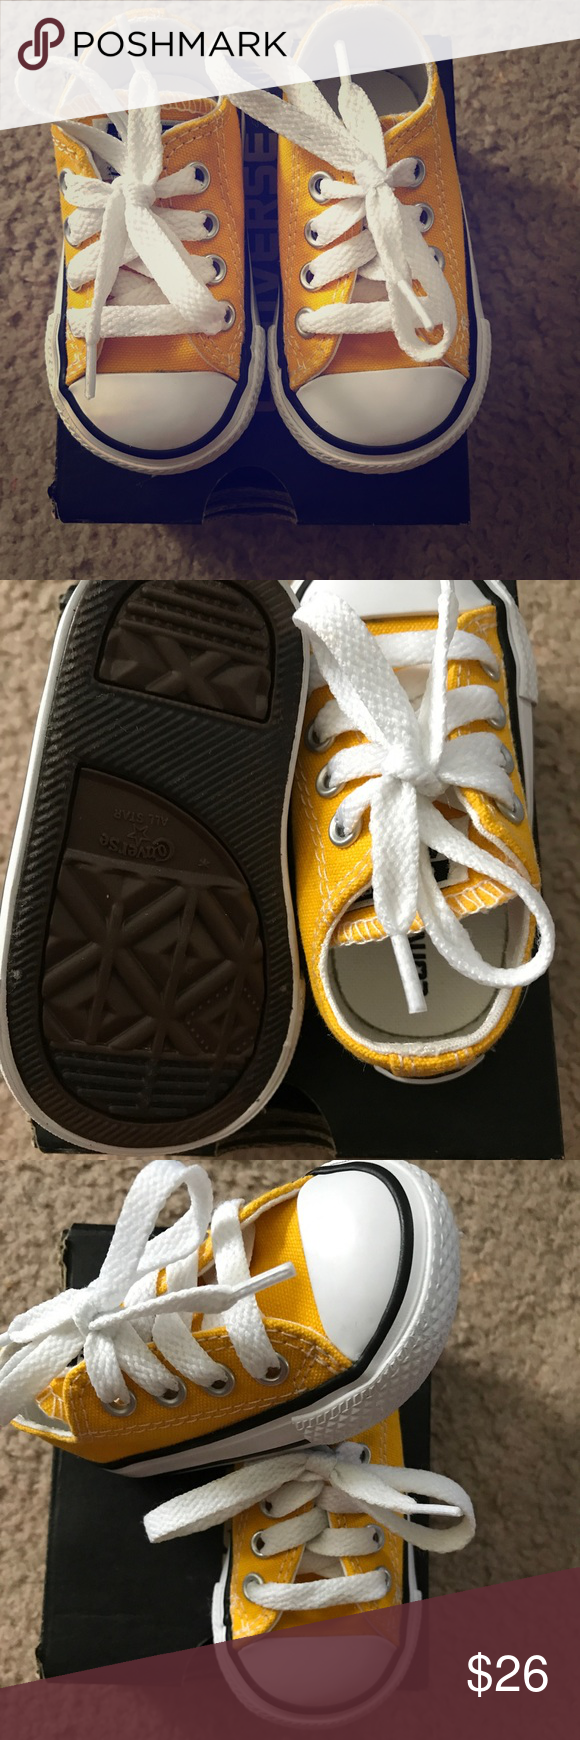 538b0bd42f2213 Girls yellow converse size 3 Yellow girls size 3 converse shoes in very good  shape. Shoes Baby   Walker